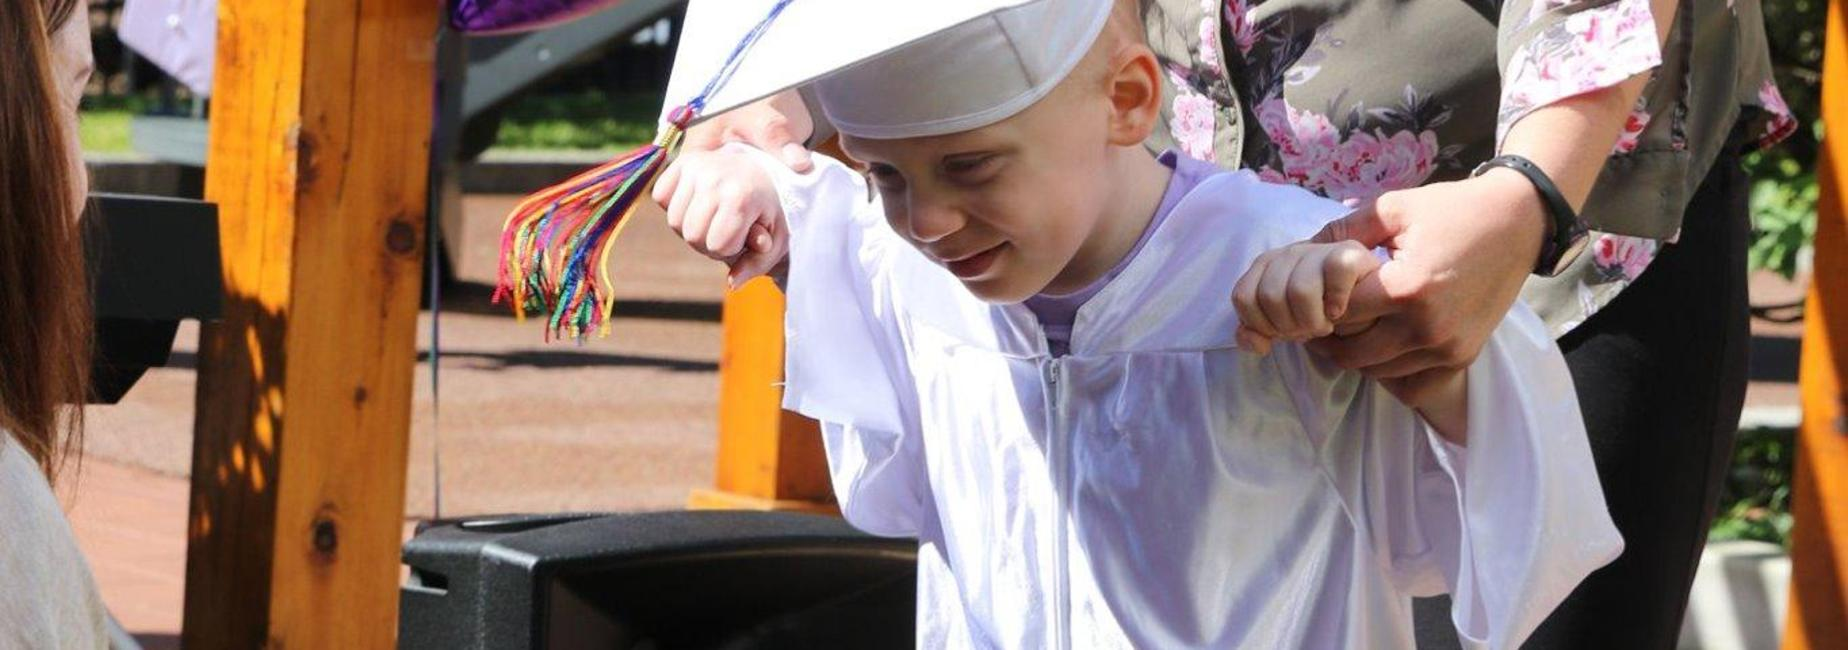 student accepting his preschool graduation diploma